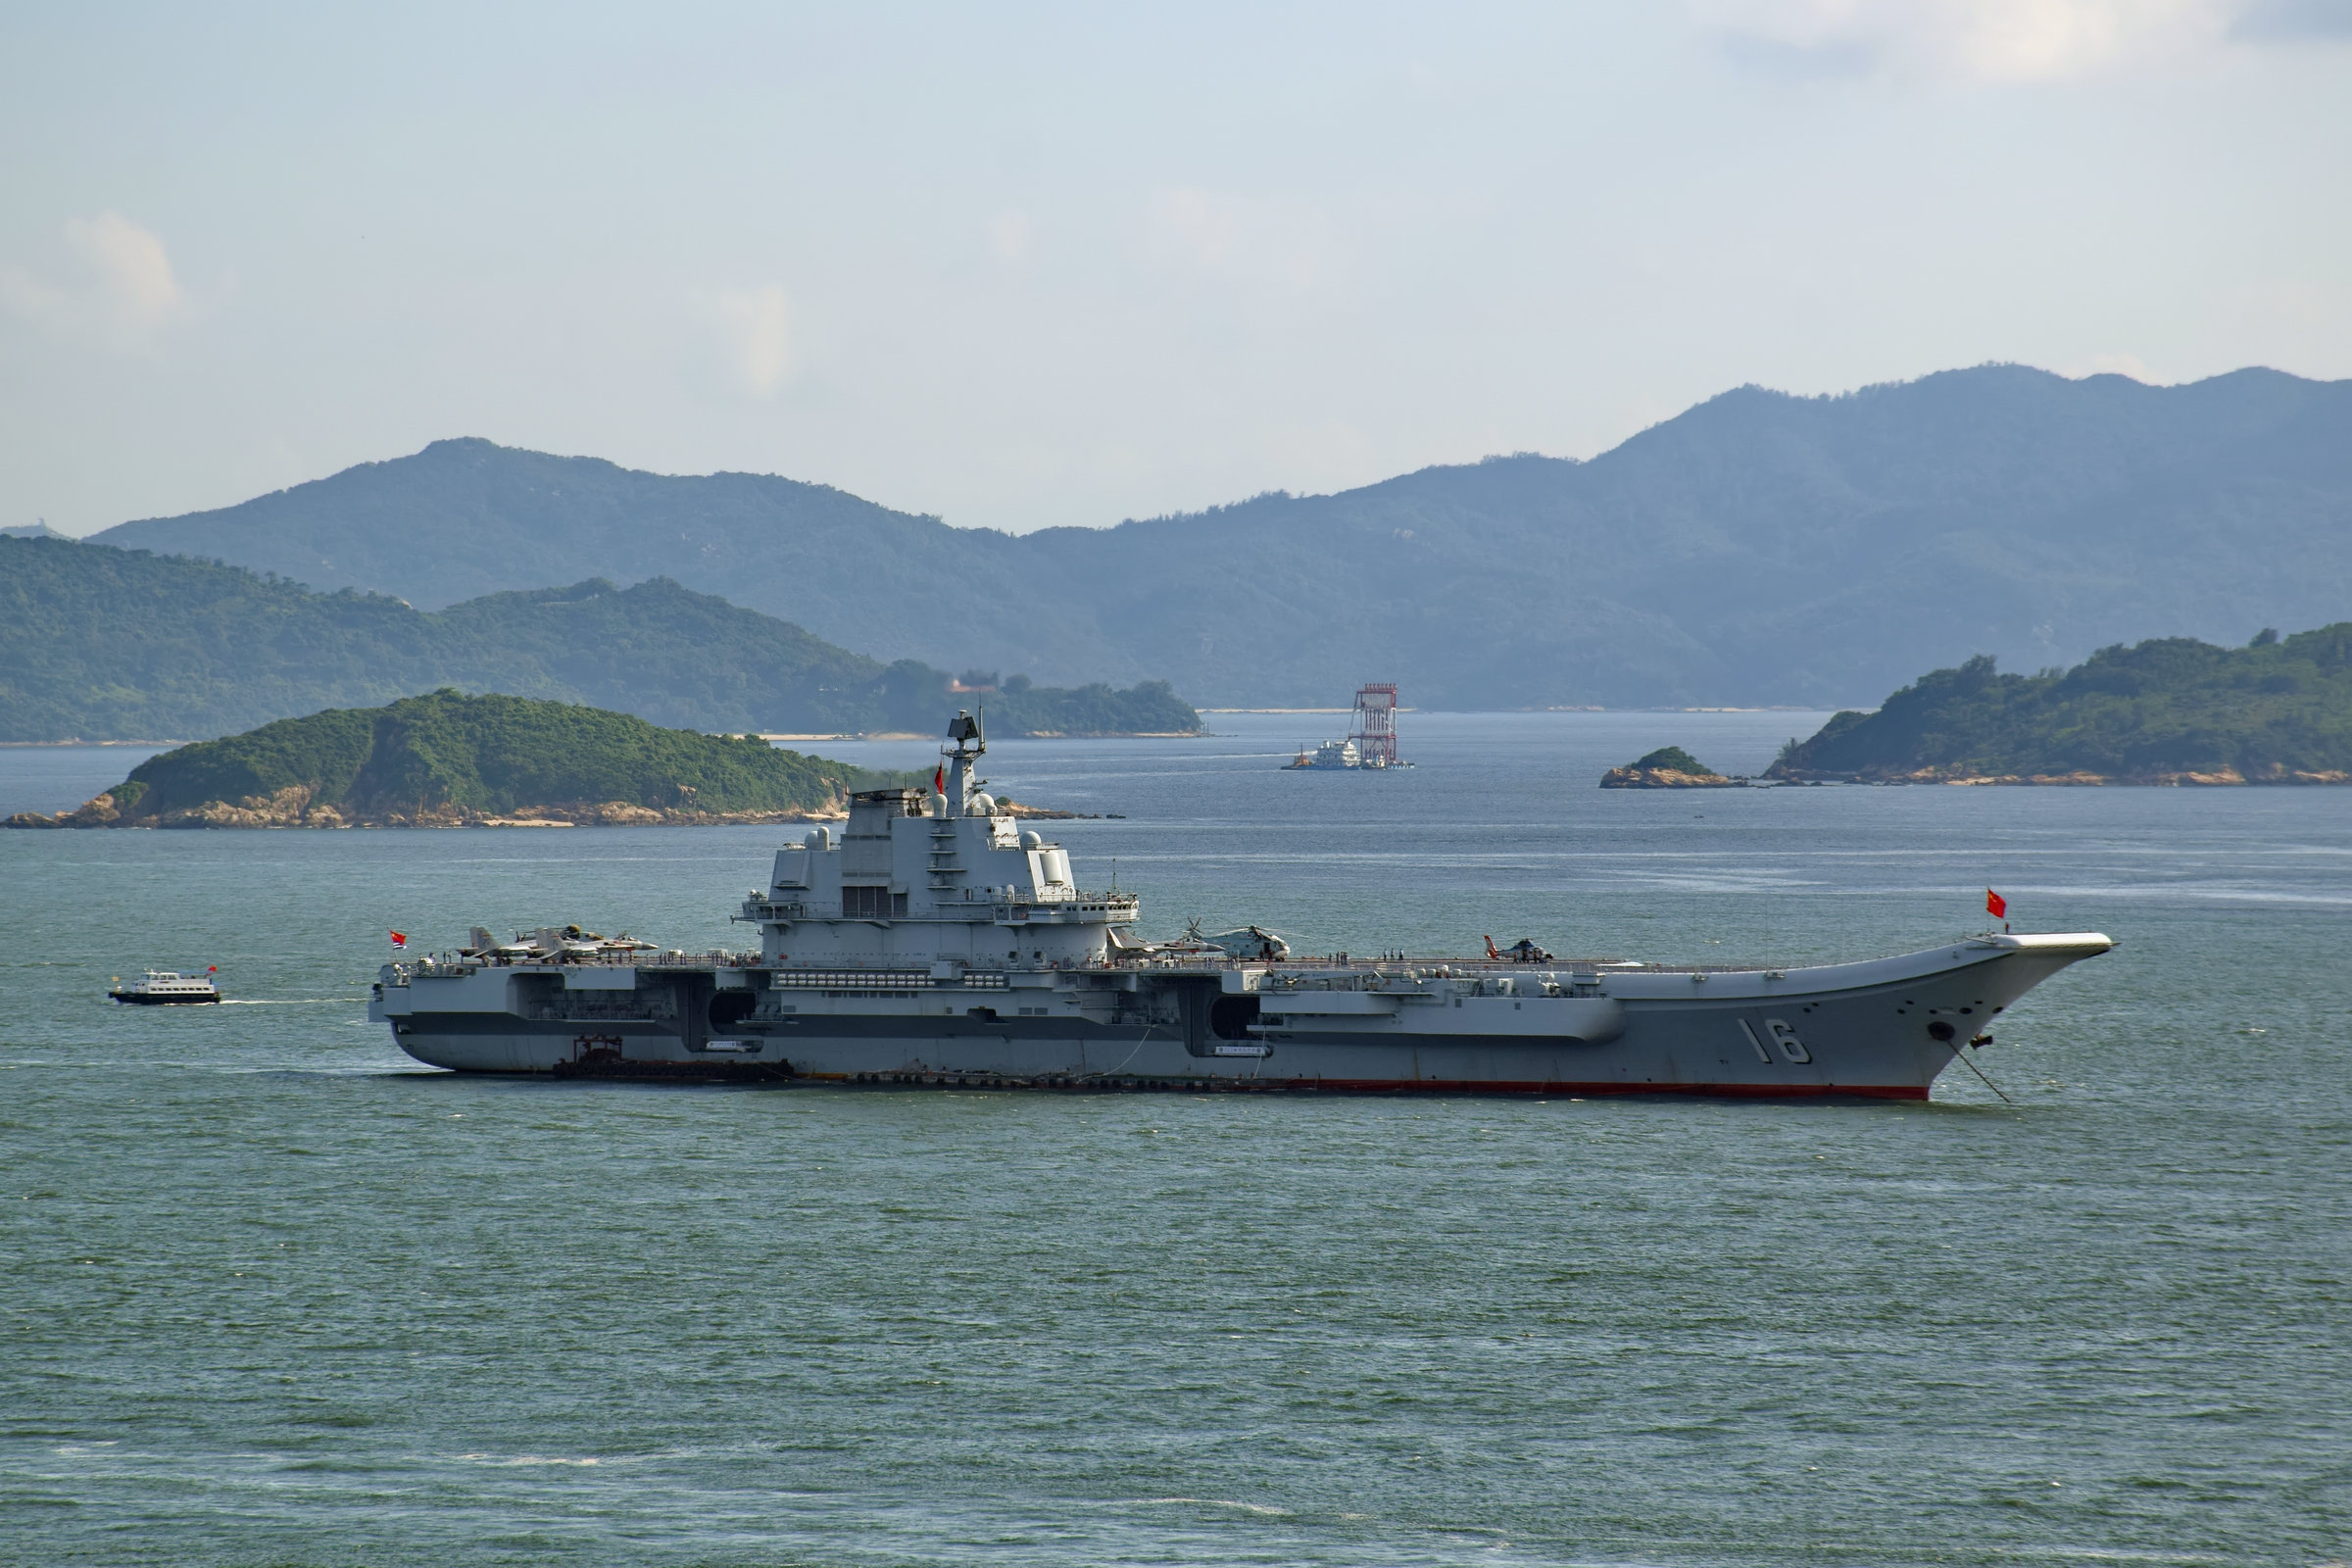 The Chinese display of power near Taiwan